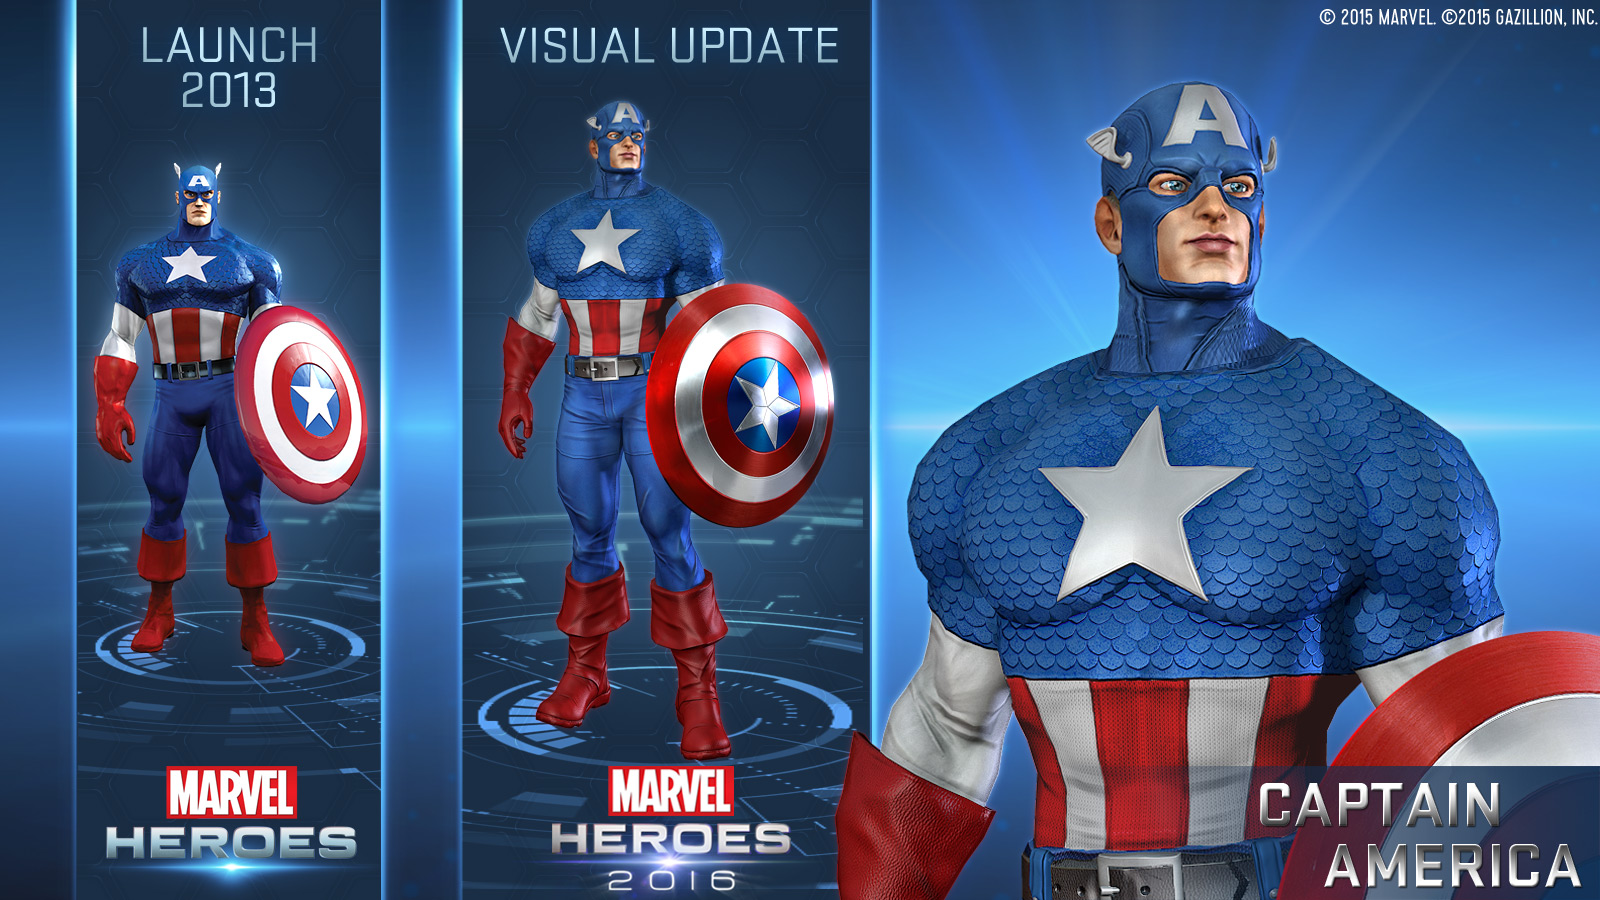 Marvel Heroes 2015 Upgrading to Marvel Heroes 2016